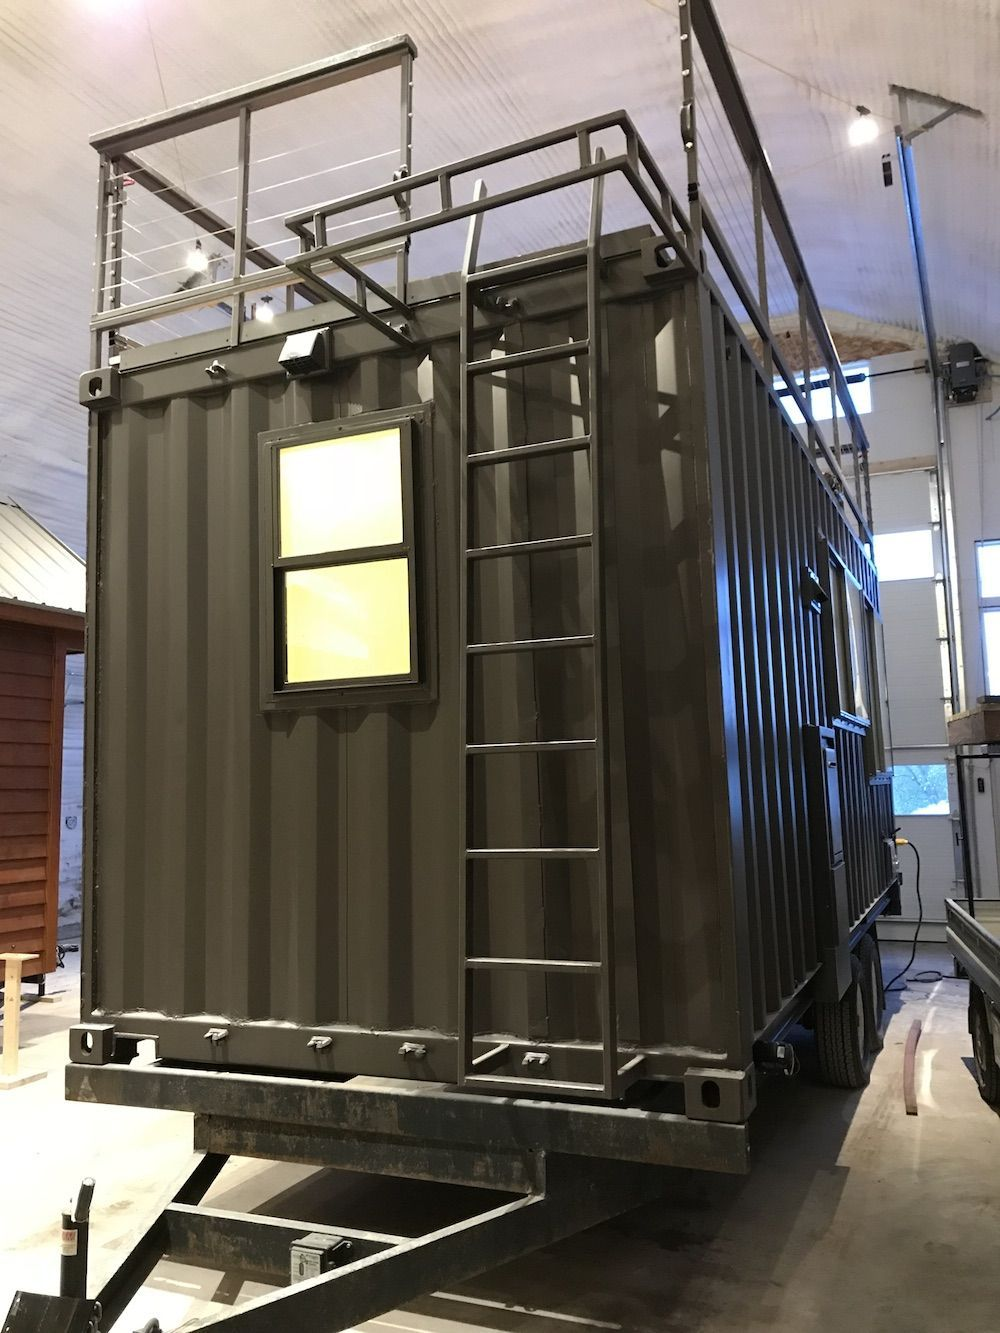 Major Tiny House Builder Unveils A Shipping Container Model Tiny House Builders Building A Container Home Container House